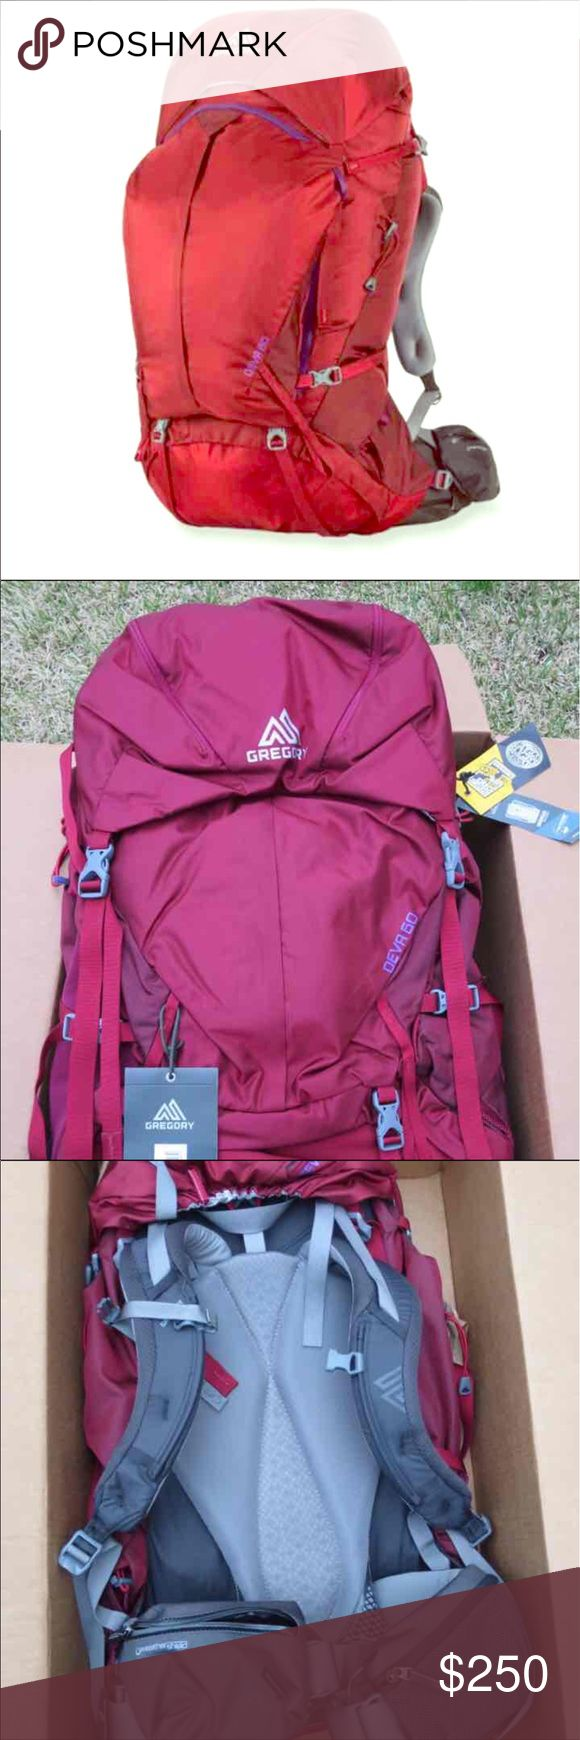 BNWT Gregory Deva 60 Backpack Brand New! Women's Gregory Deva 60 Hiking Backpack. Size Small. I purchased this for a trip I was planning to #Peru last Xmas but my plans changed. Retails for $299.  Open to reasonable offers :)